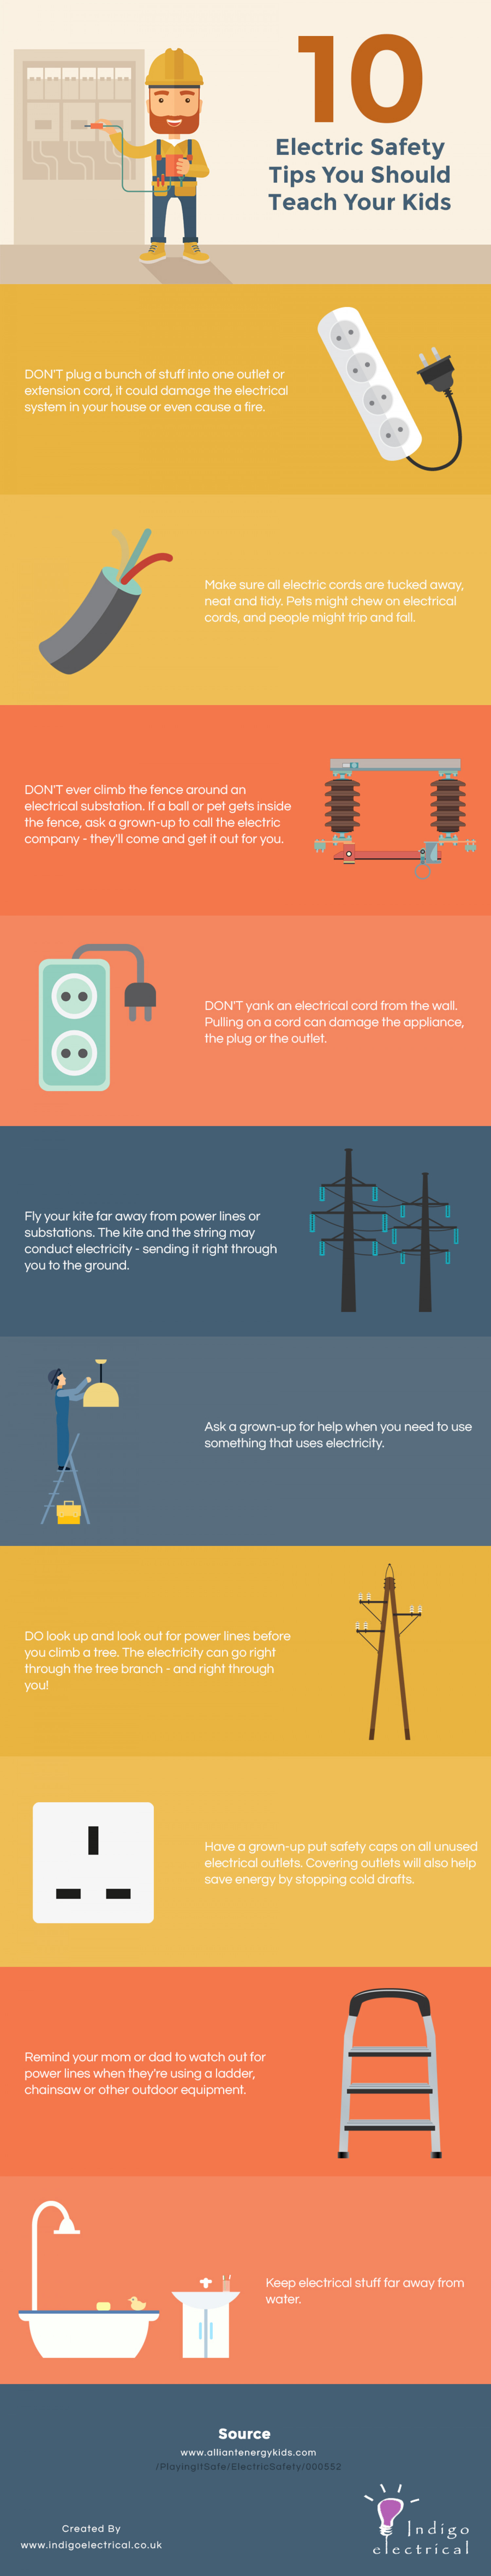 10 Electric Safety Tips You Should Teach Your Kids Infographic